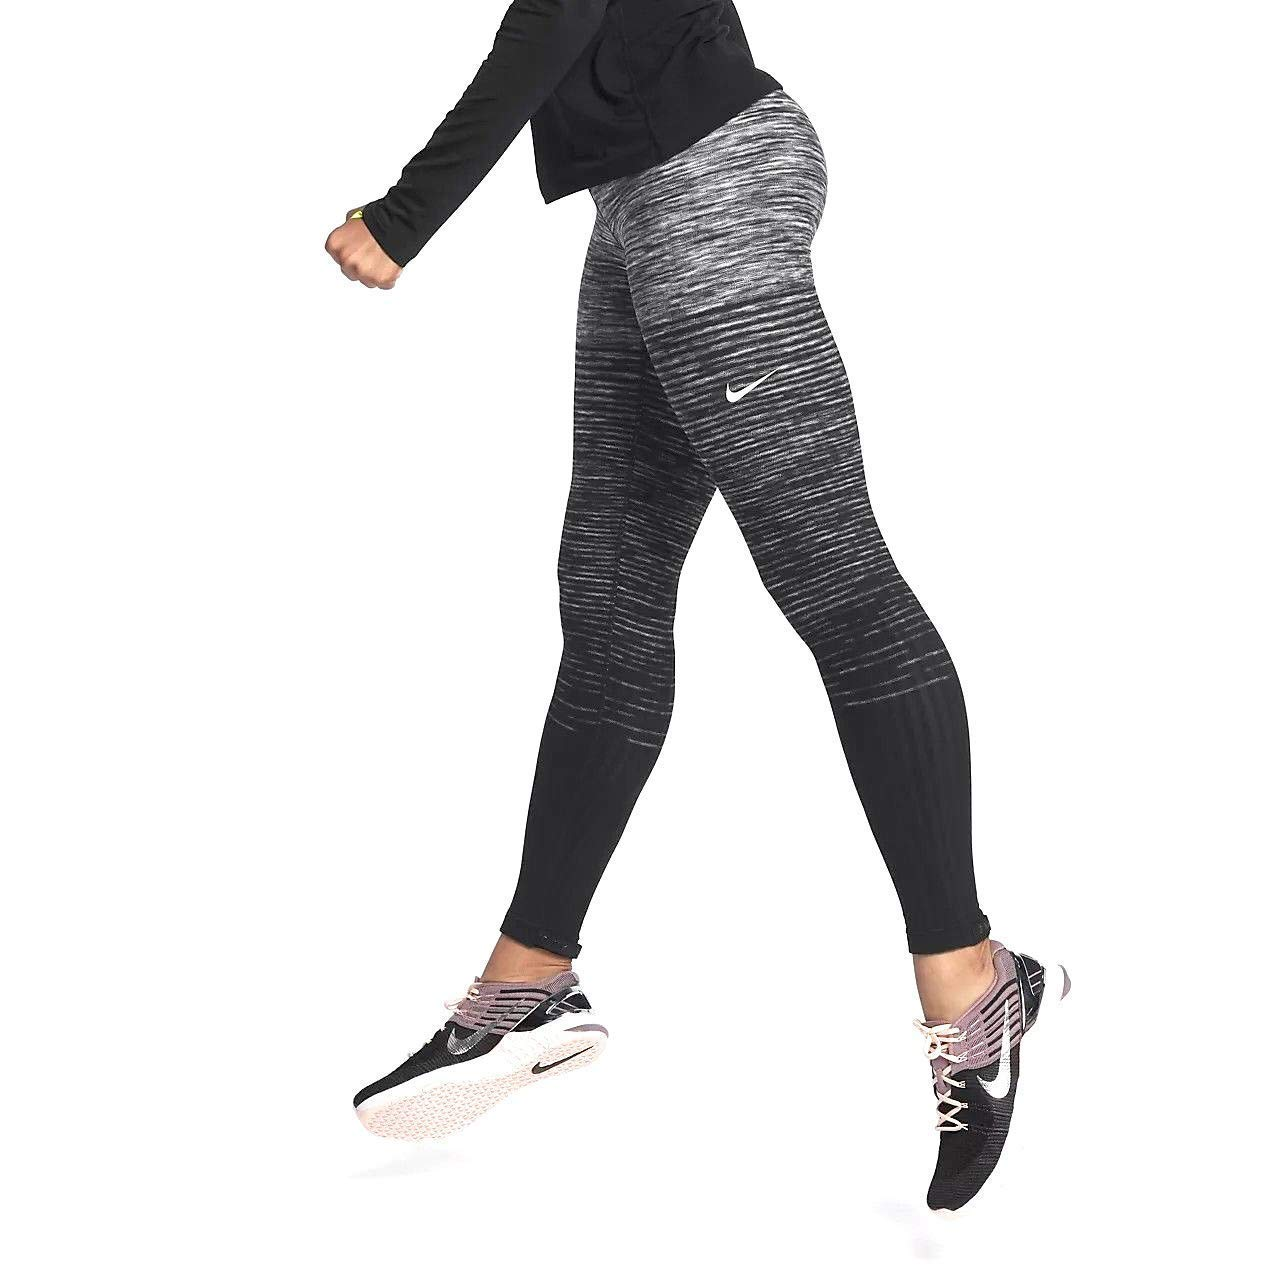 2b73bf382b389 NIKE Women's Pro Hyperwarm Fleece Printed Athletic Tights Leggings -